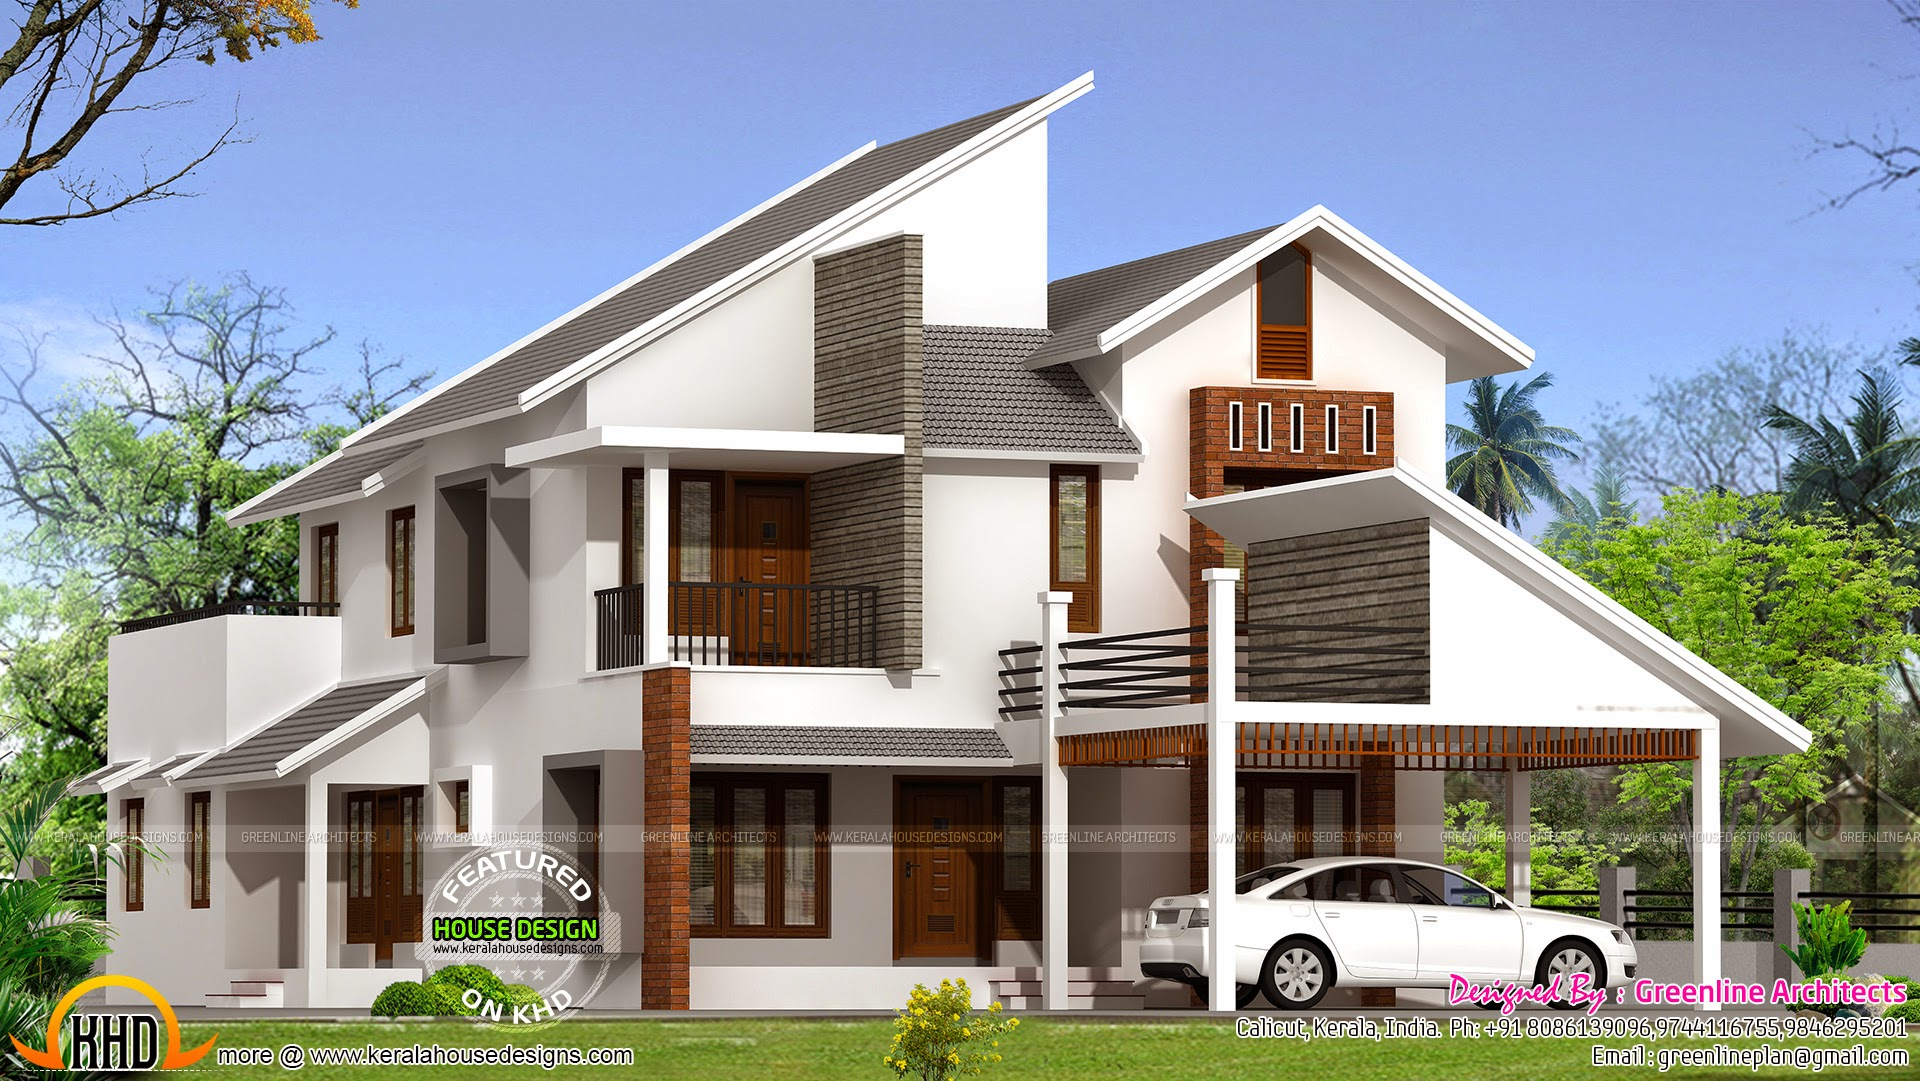 New modern house plan kerala home design and floor plans for Latest house design images